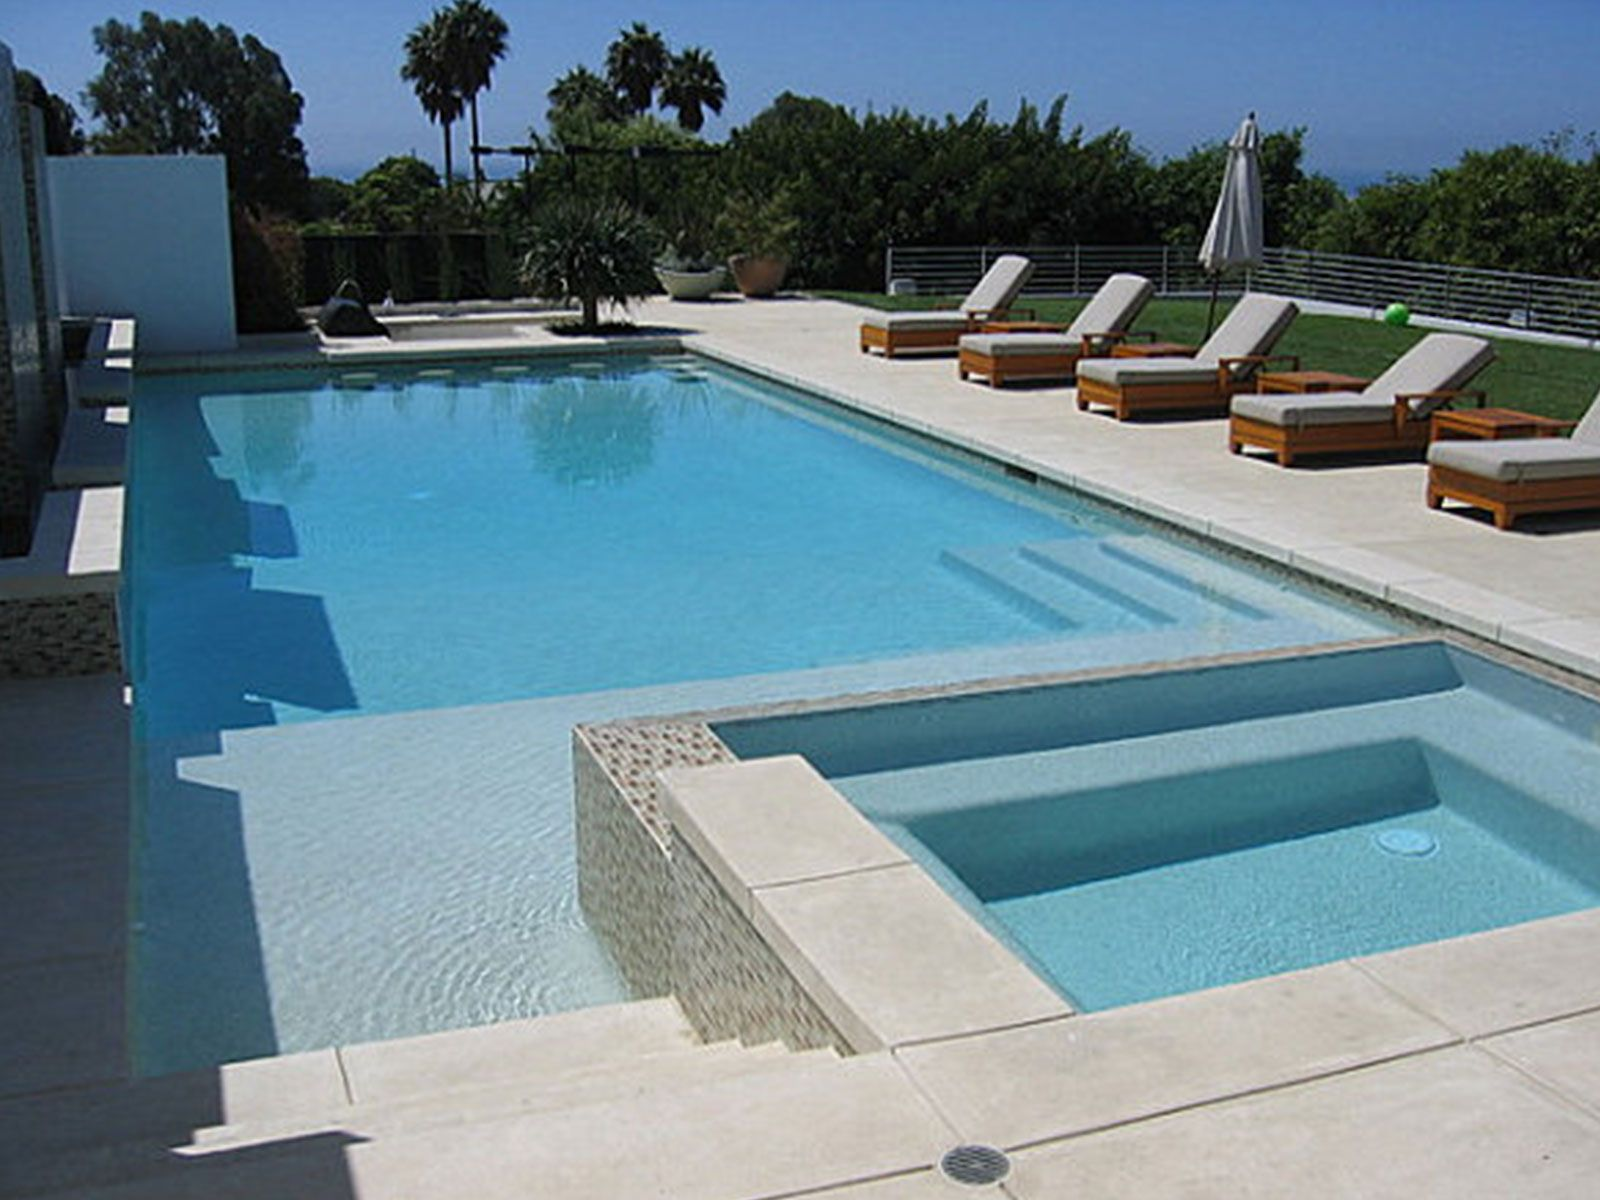 Simple swimming pool design image modern creative swimming modern swimming pools and spas pool - Swimming pool designs ...